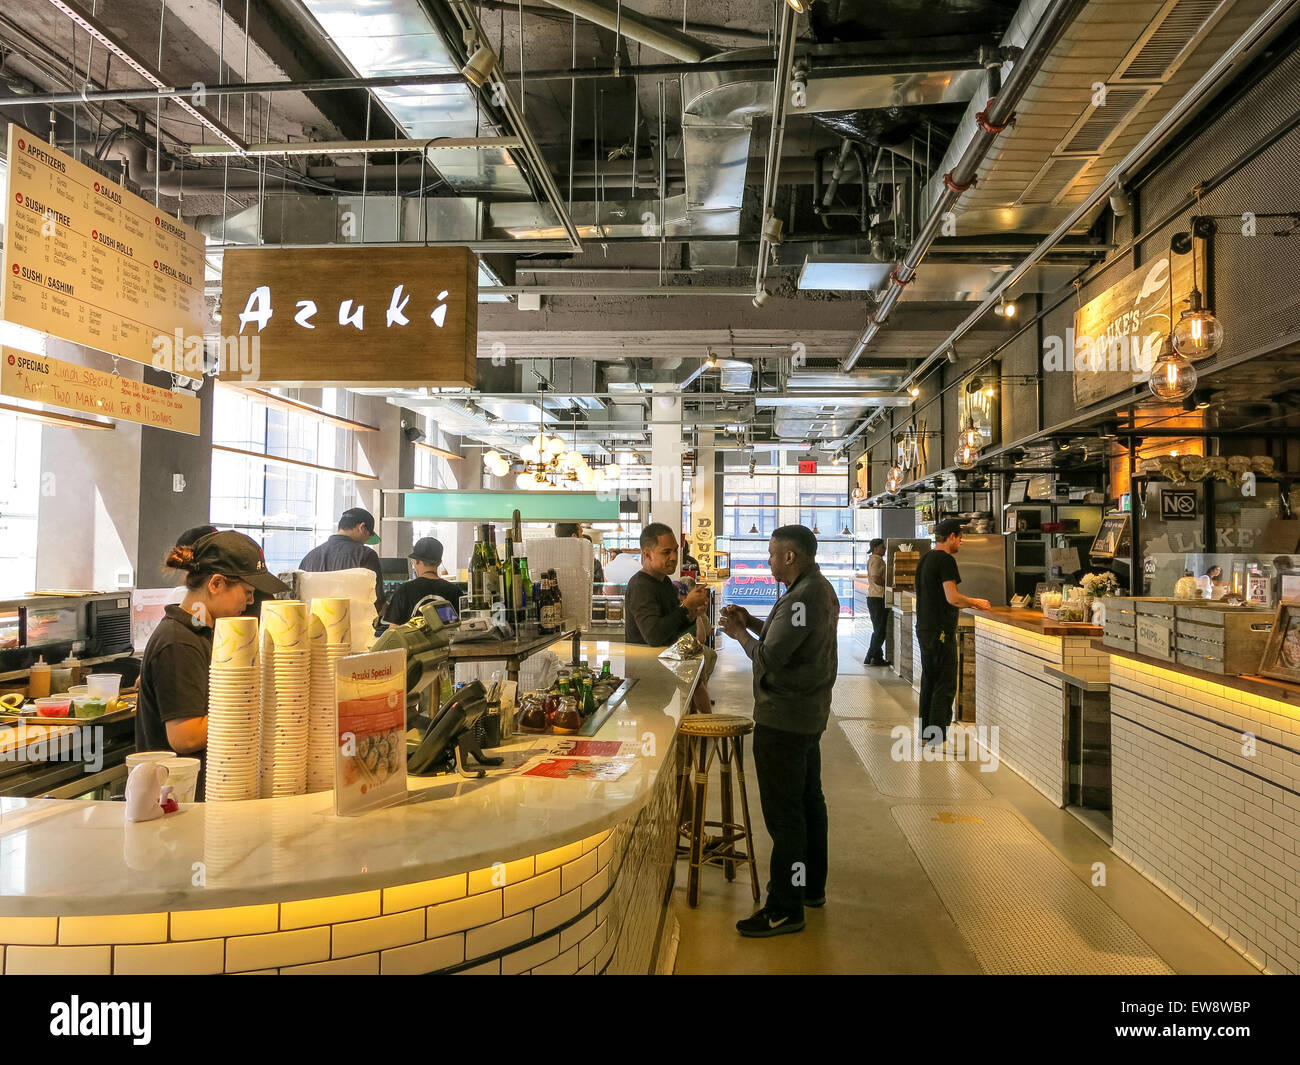 City Kitchen city kitchen food market, times square, nyc stock photo, royalty